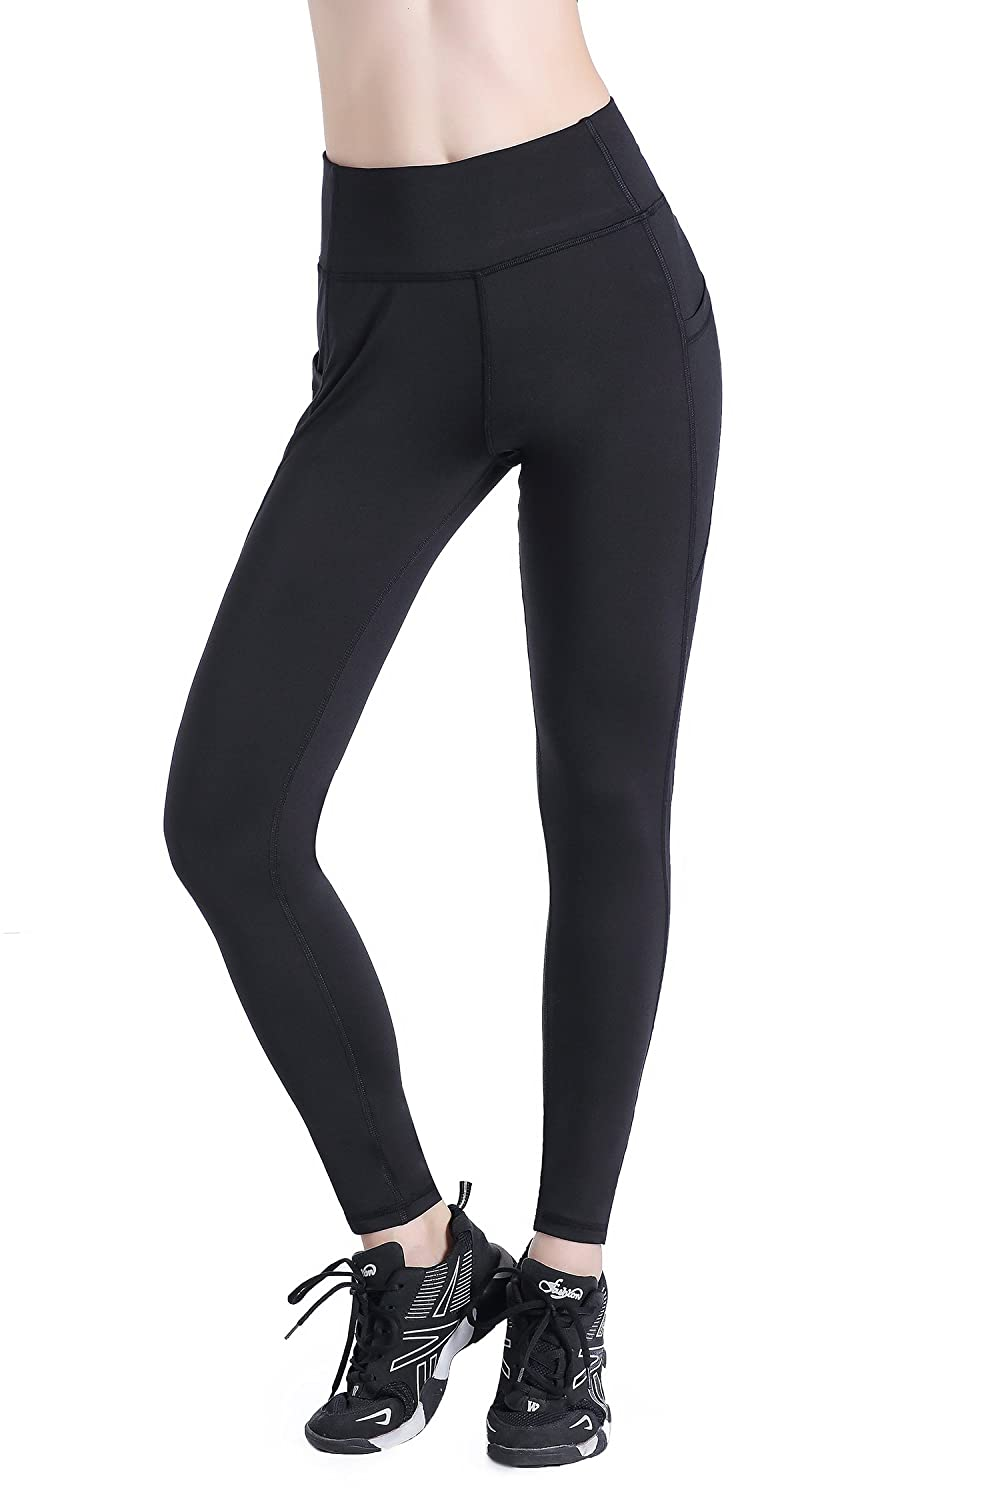 Leovqn High Waist Gym Leggings for Women with Side Pockets Stretch Yoga Pants for Workout Running Sports